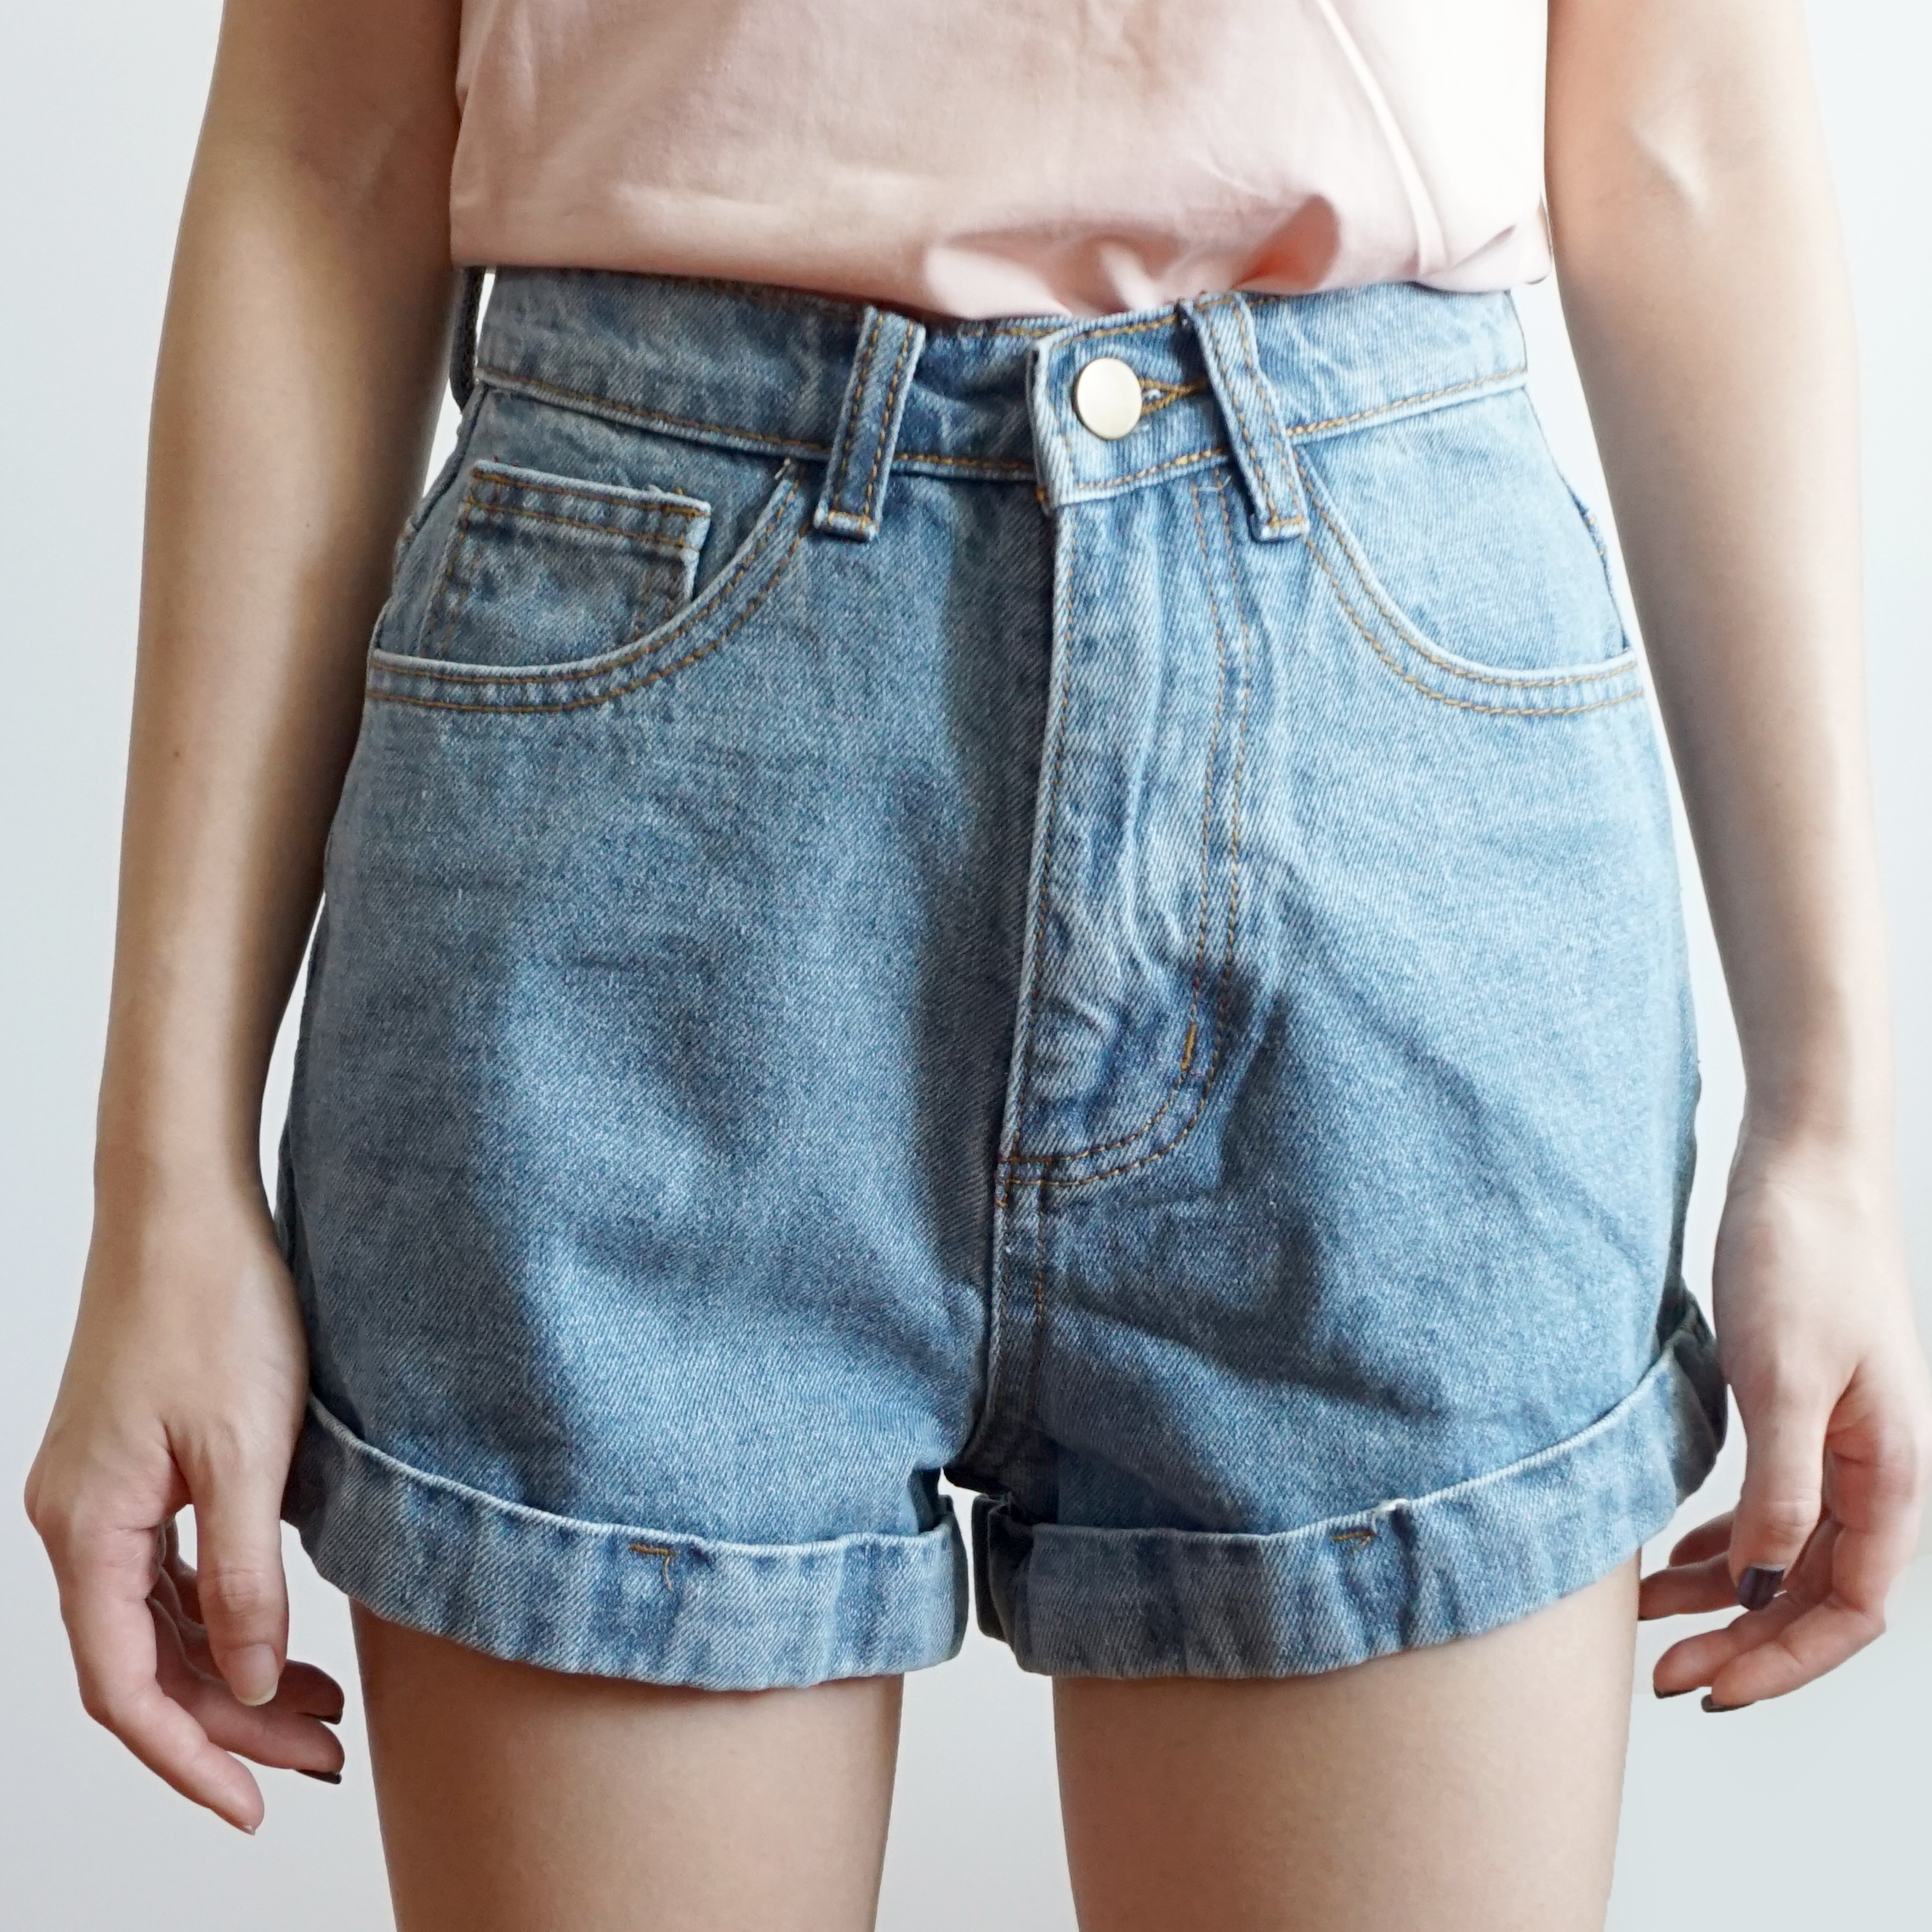 71b187a534 Vintage Cuffed Denim High Waist Shorts (4 Colors) · Megoosta Fashion ...